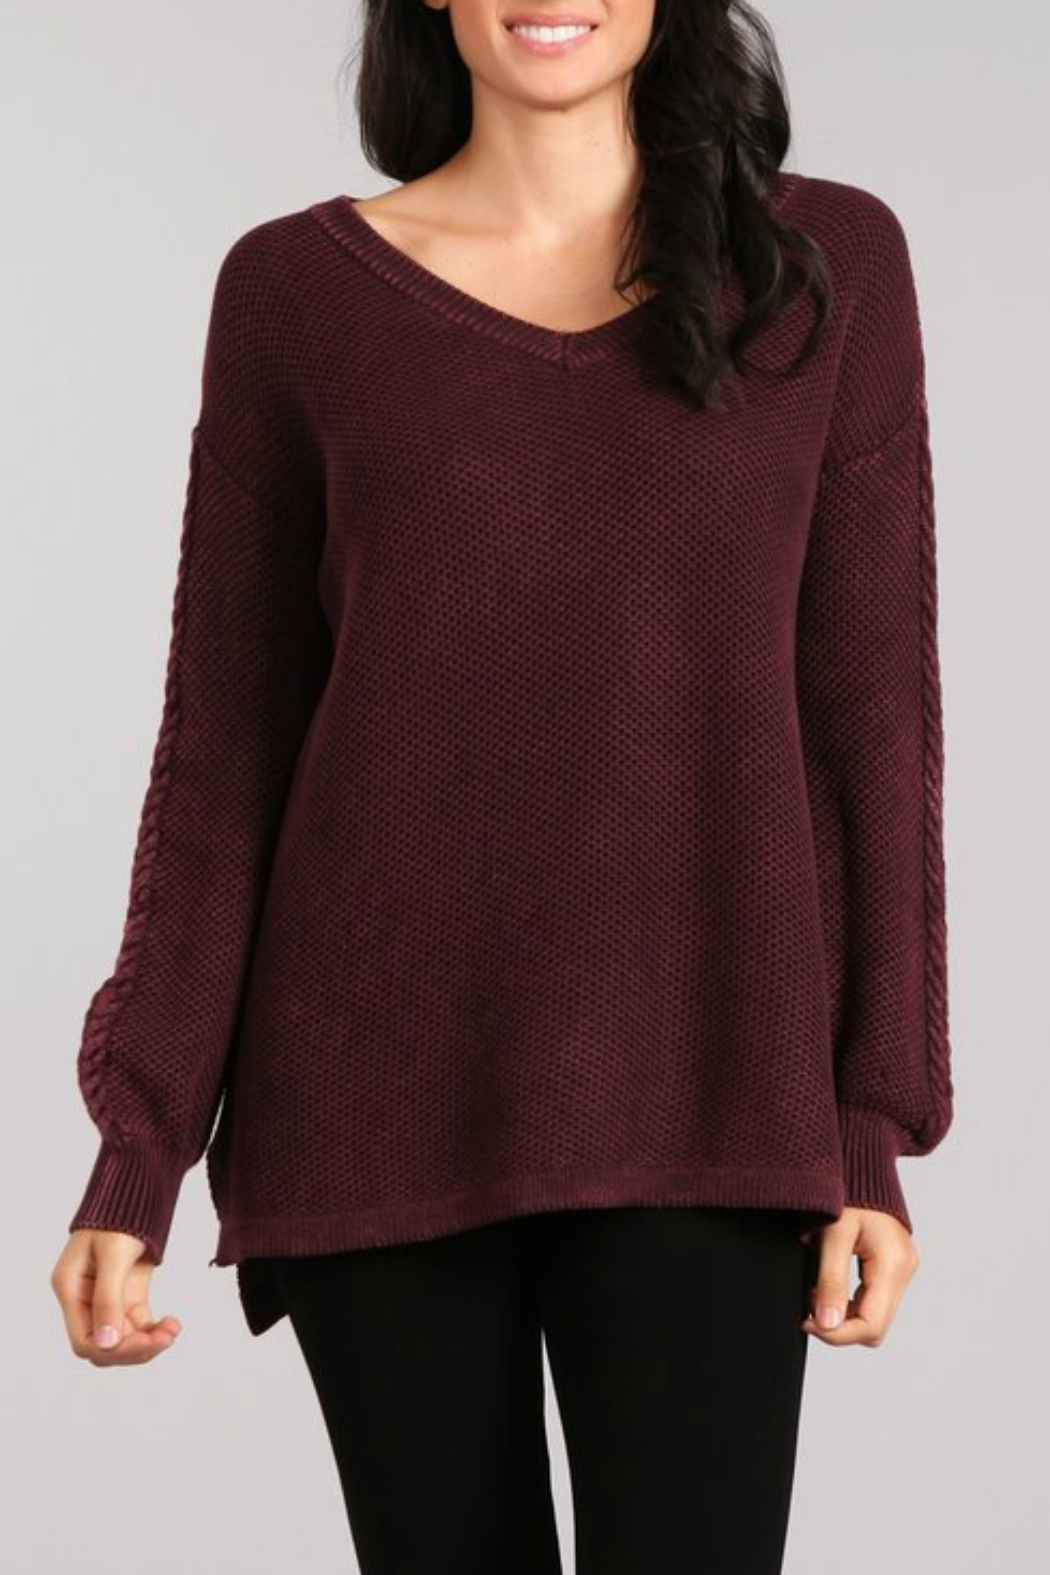 096666746e1794 M-rena Mineral Wash sweaterWwith Contasting Cable - Front Cropped Image